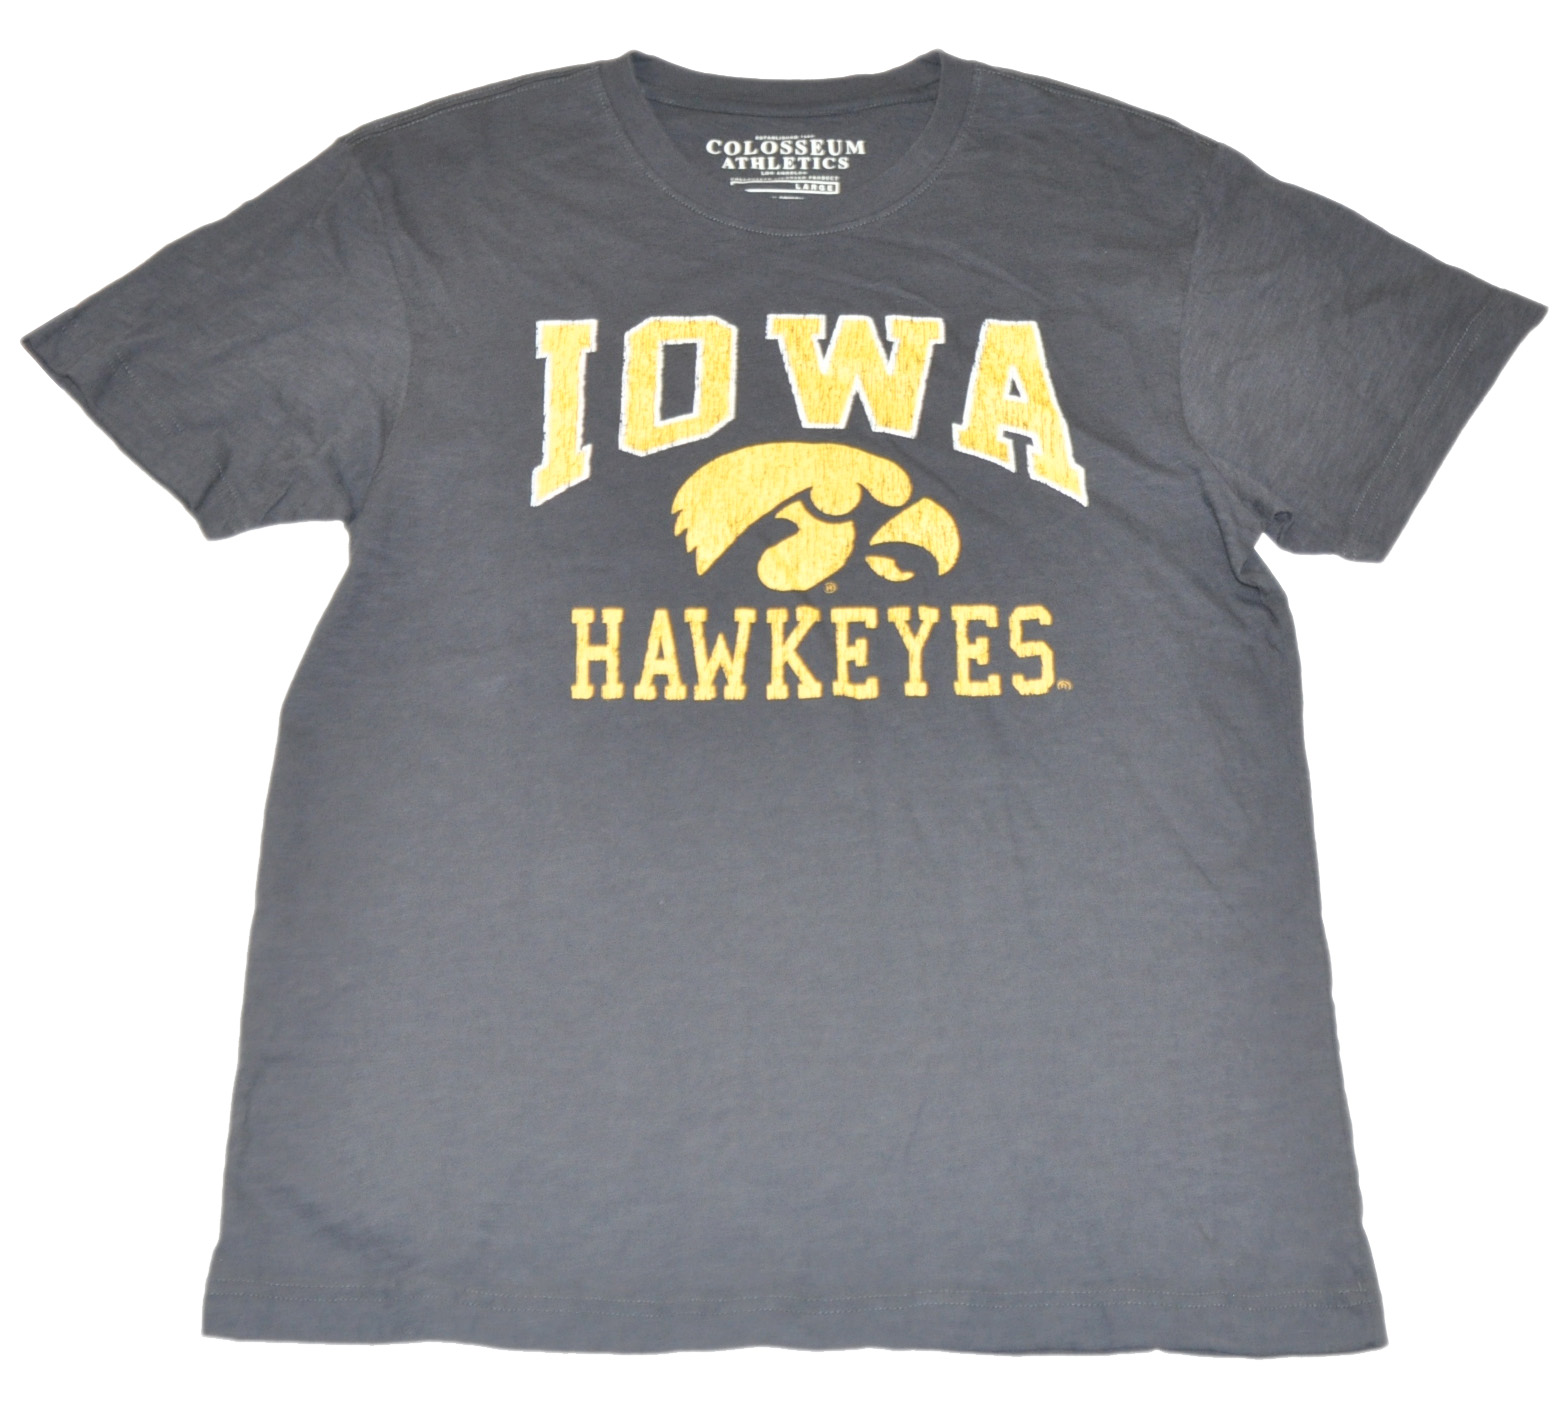 Colosseum Iowa Hawkeyes Colosseum Athletics Faded Logo Black 100% Cotton T-Shirt (L) at Sears.com